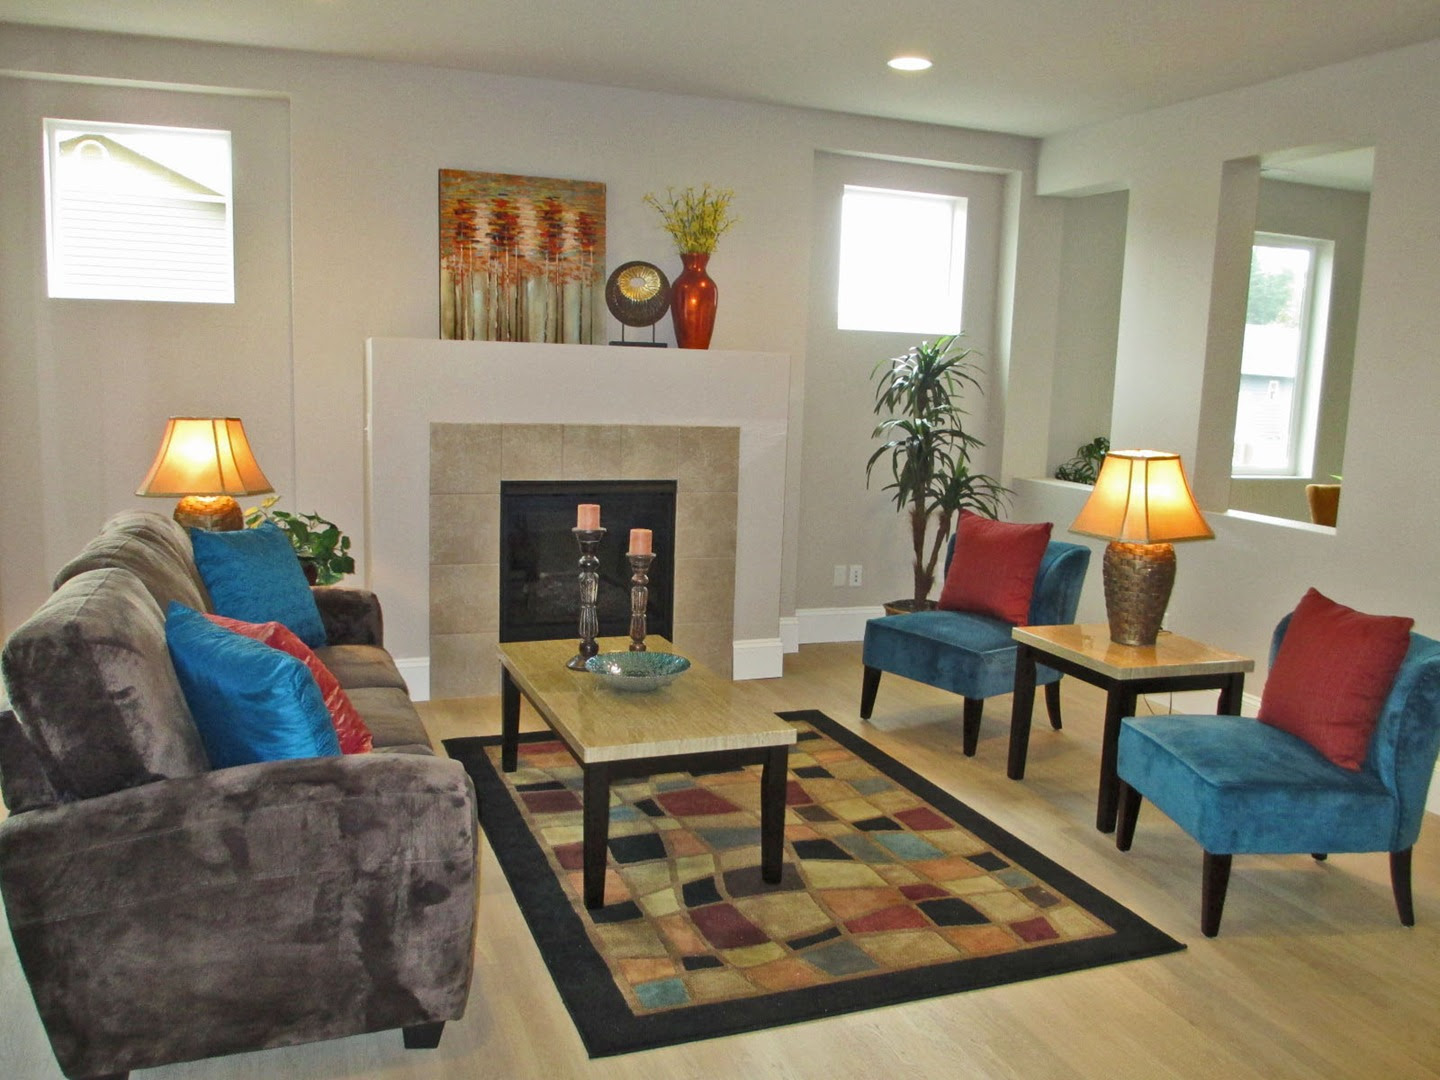 Design Smart Home Staging Redesign Upscale Design Services For